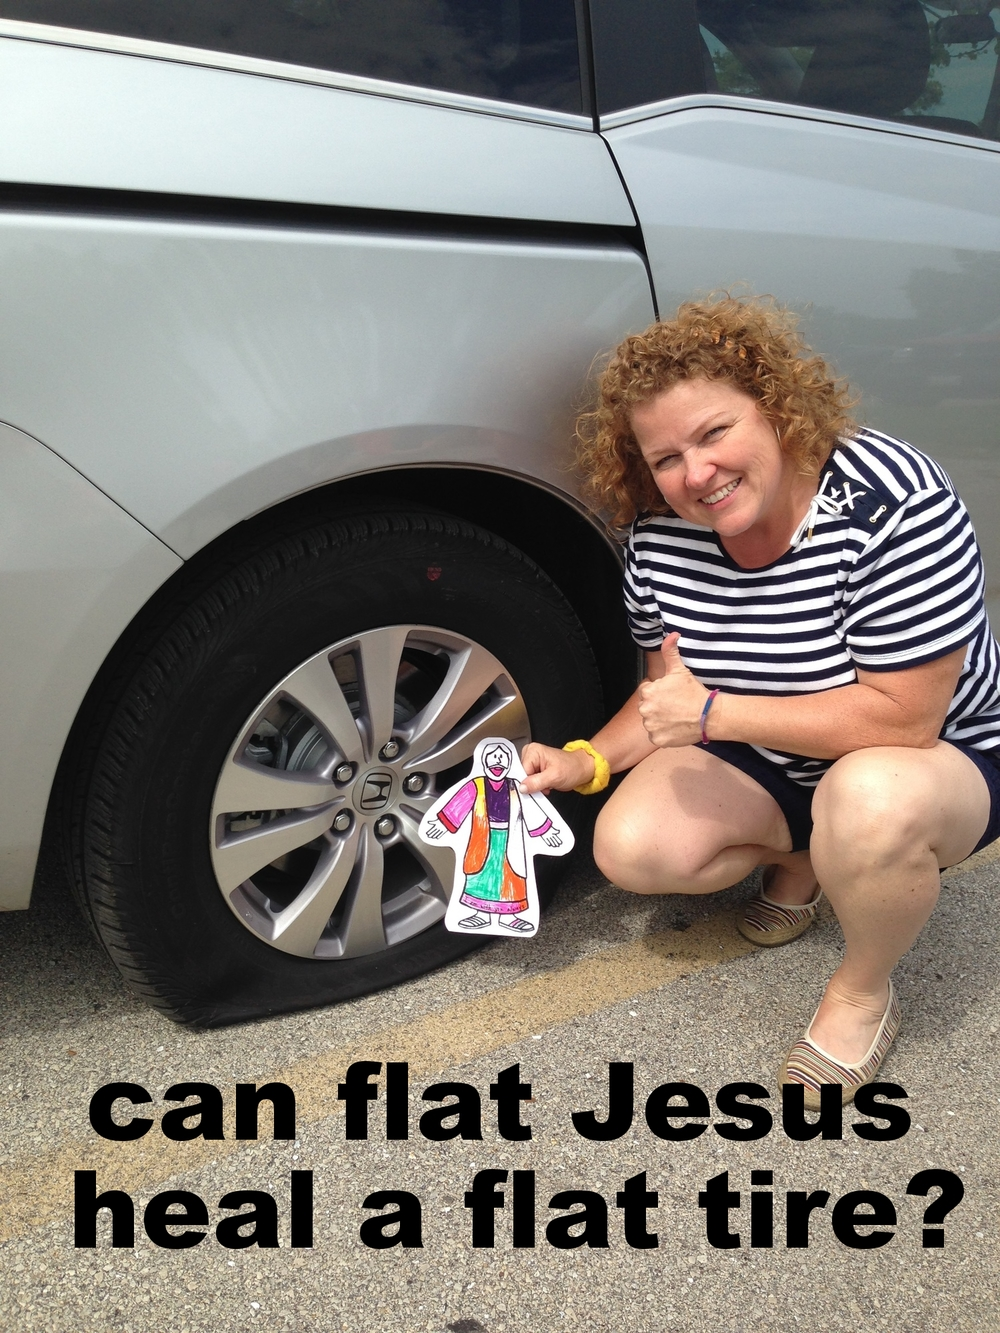 flat jesus and the flat tire.jpg